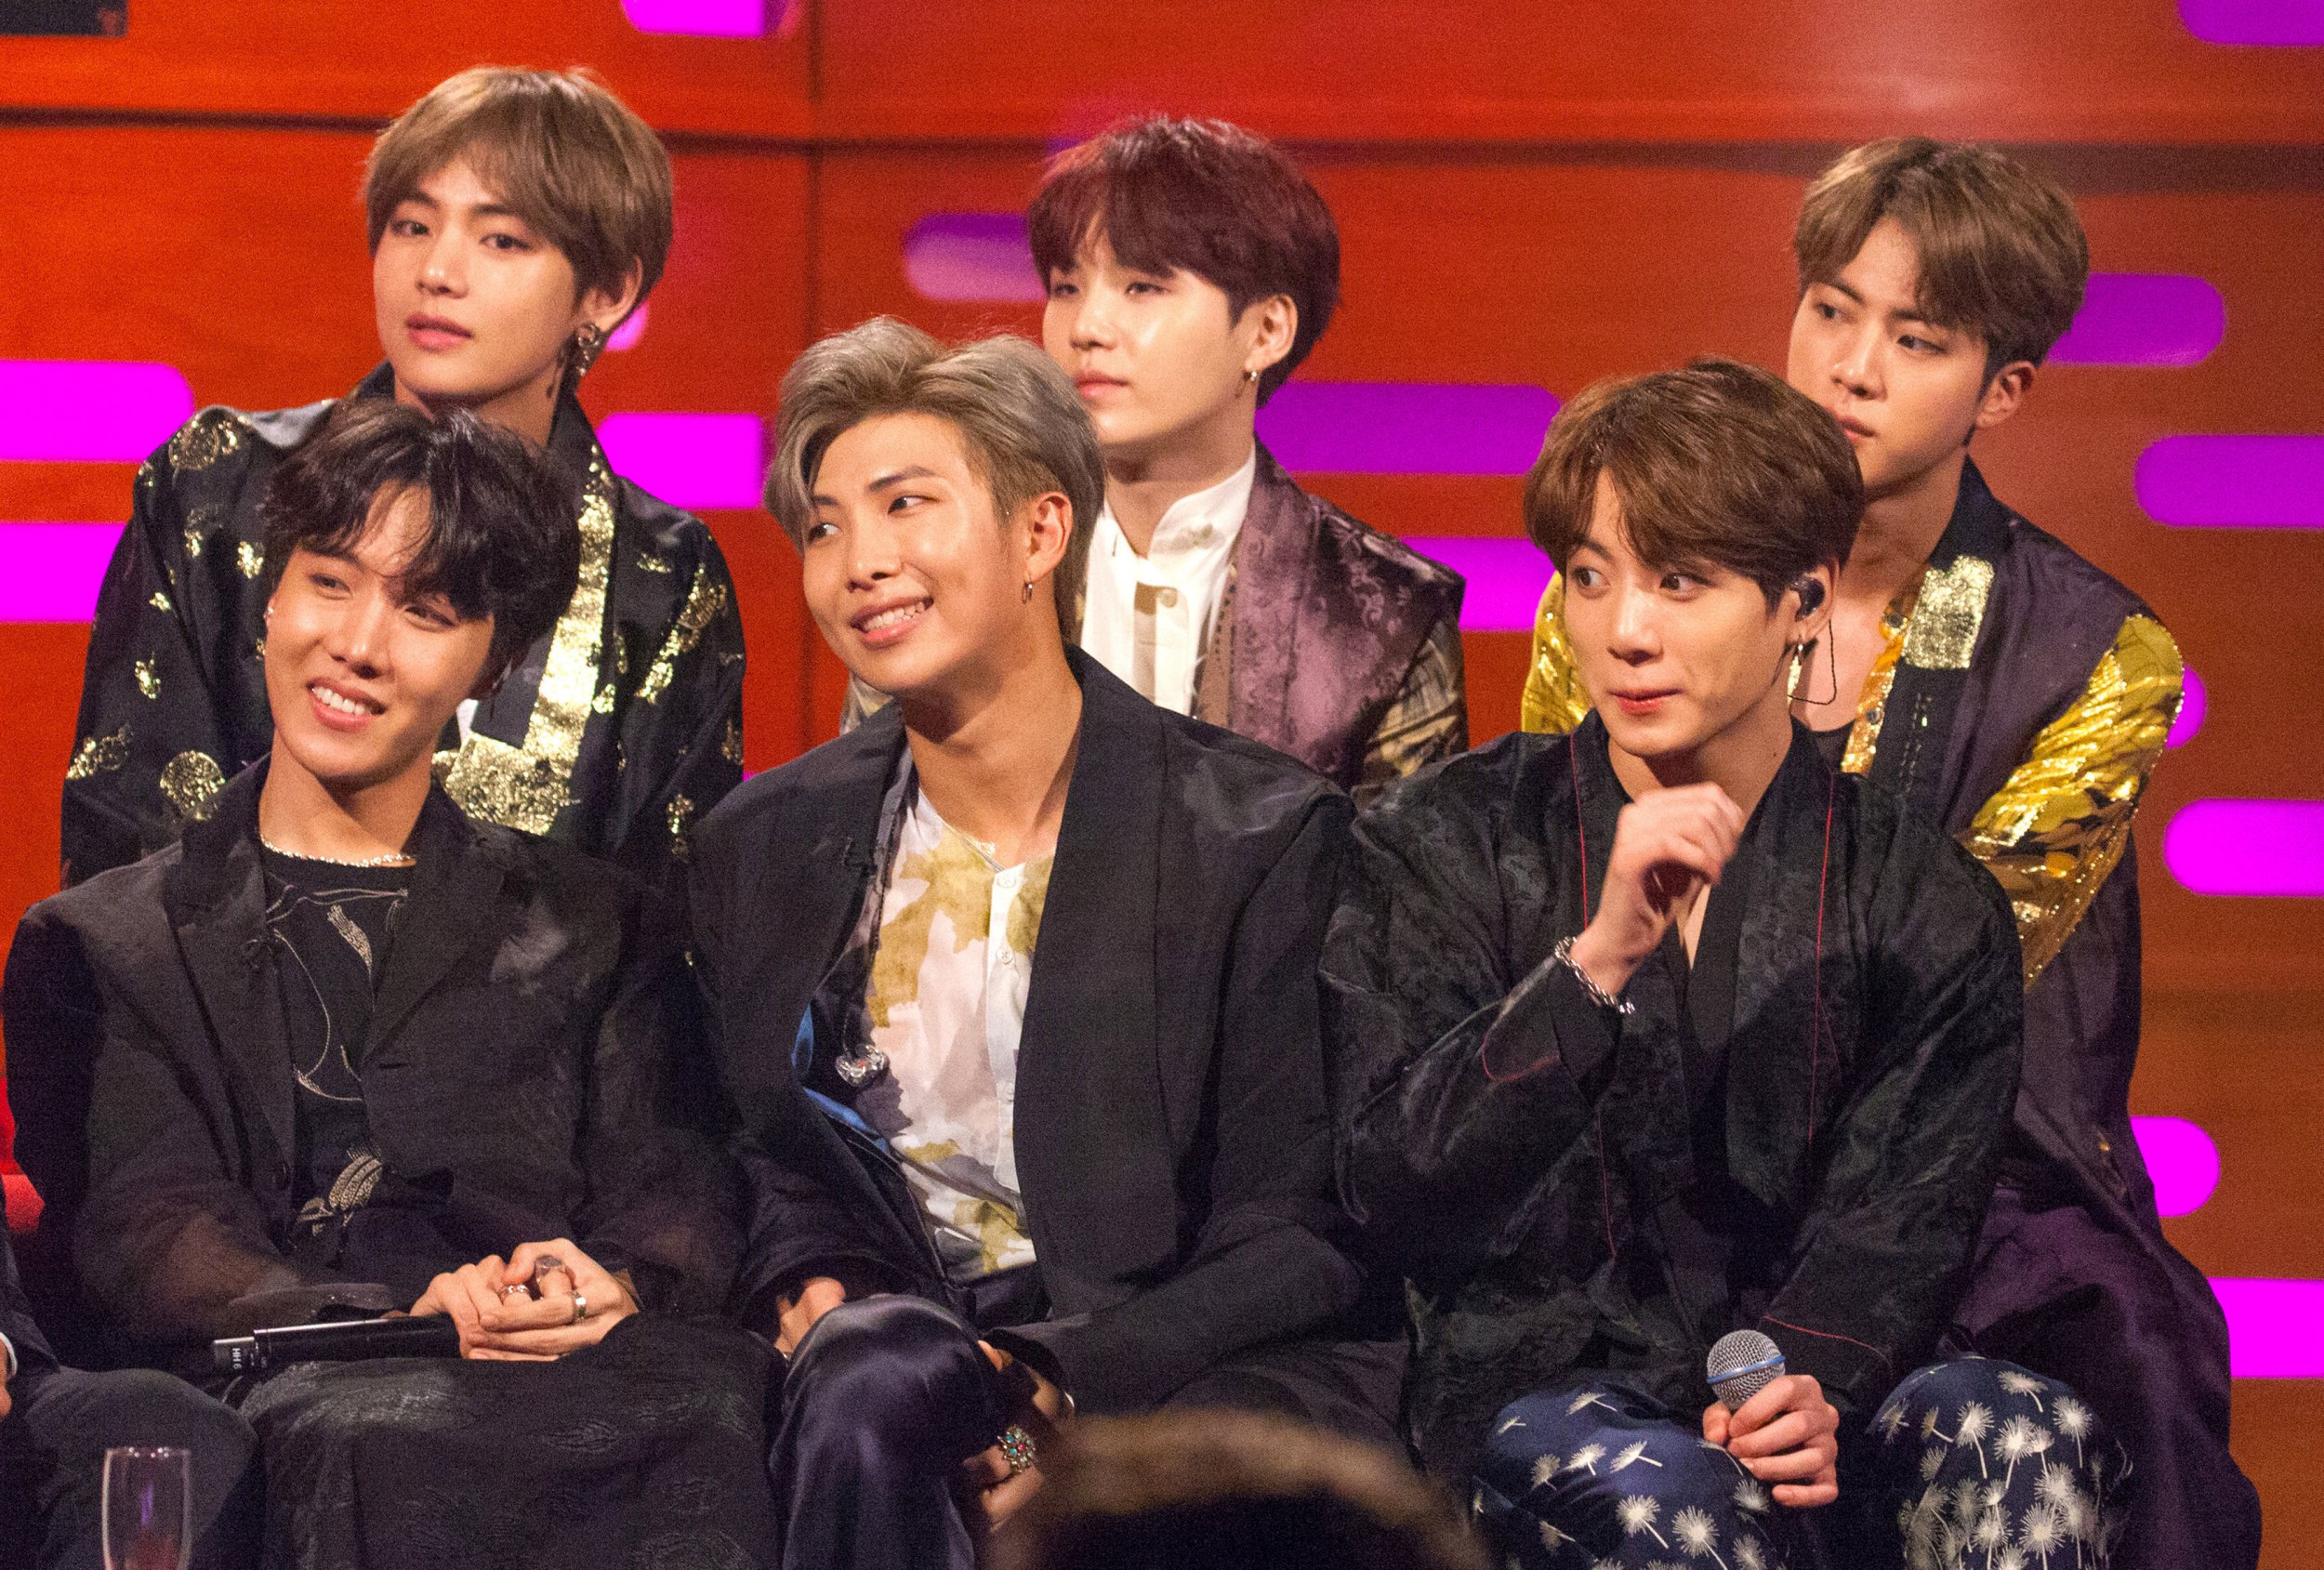 File photo dated 11/10/18 of K-pop superstars BTS who have won big at the BBC Radio 1 Teen Awards as they were named best international group and social media stars. PRESS ASSOCIATION Photo. Issue date: Sunday October 21, 2018. The seven-piece boy band, who in May this year released their third studio album Love Yourself: Tear, appeared via videolink to accept the two awards. See PA story SHOWBIZ TeenAwards. Photo credit should read: Tom Haines/PA Wire